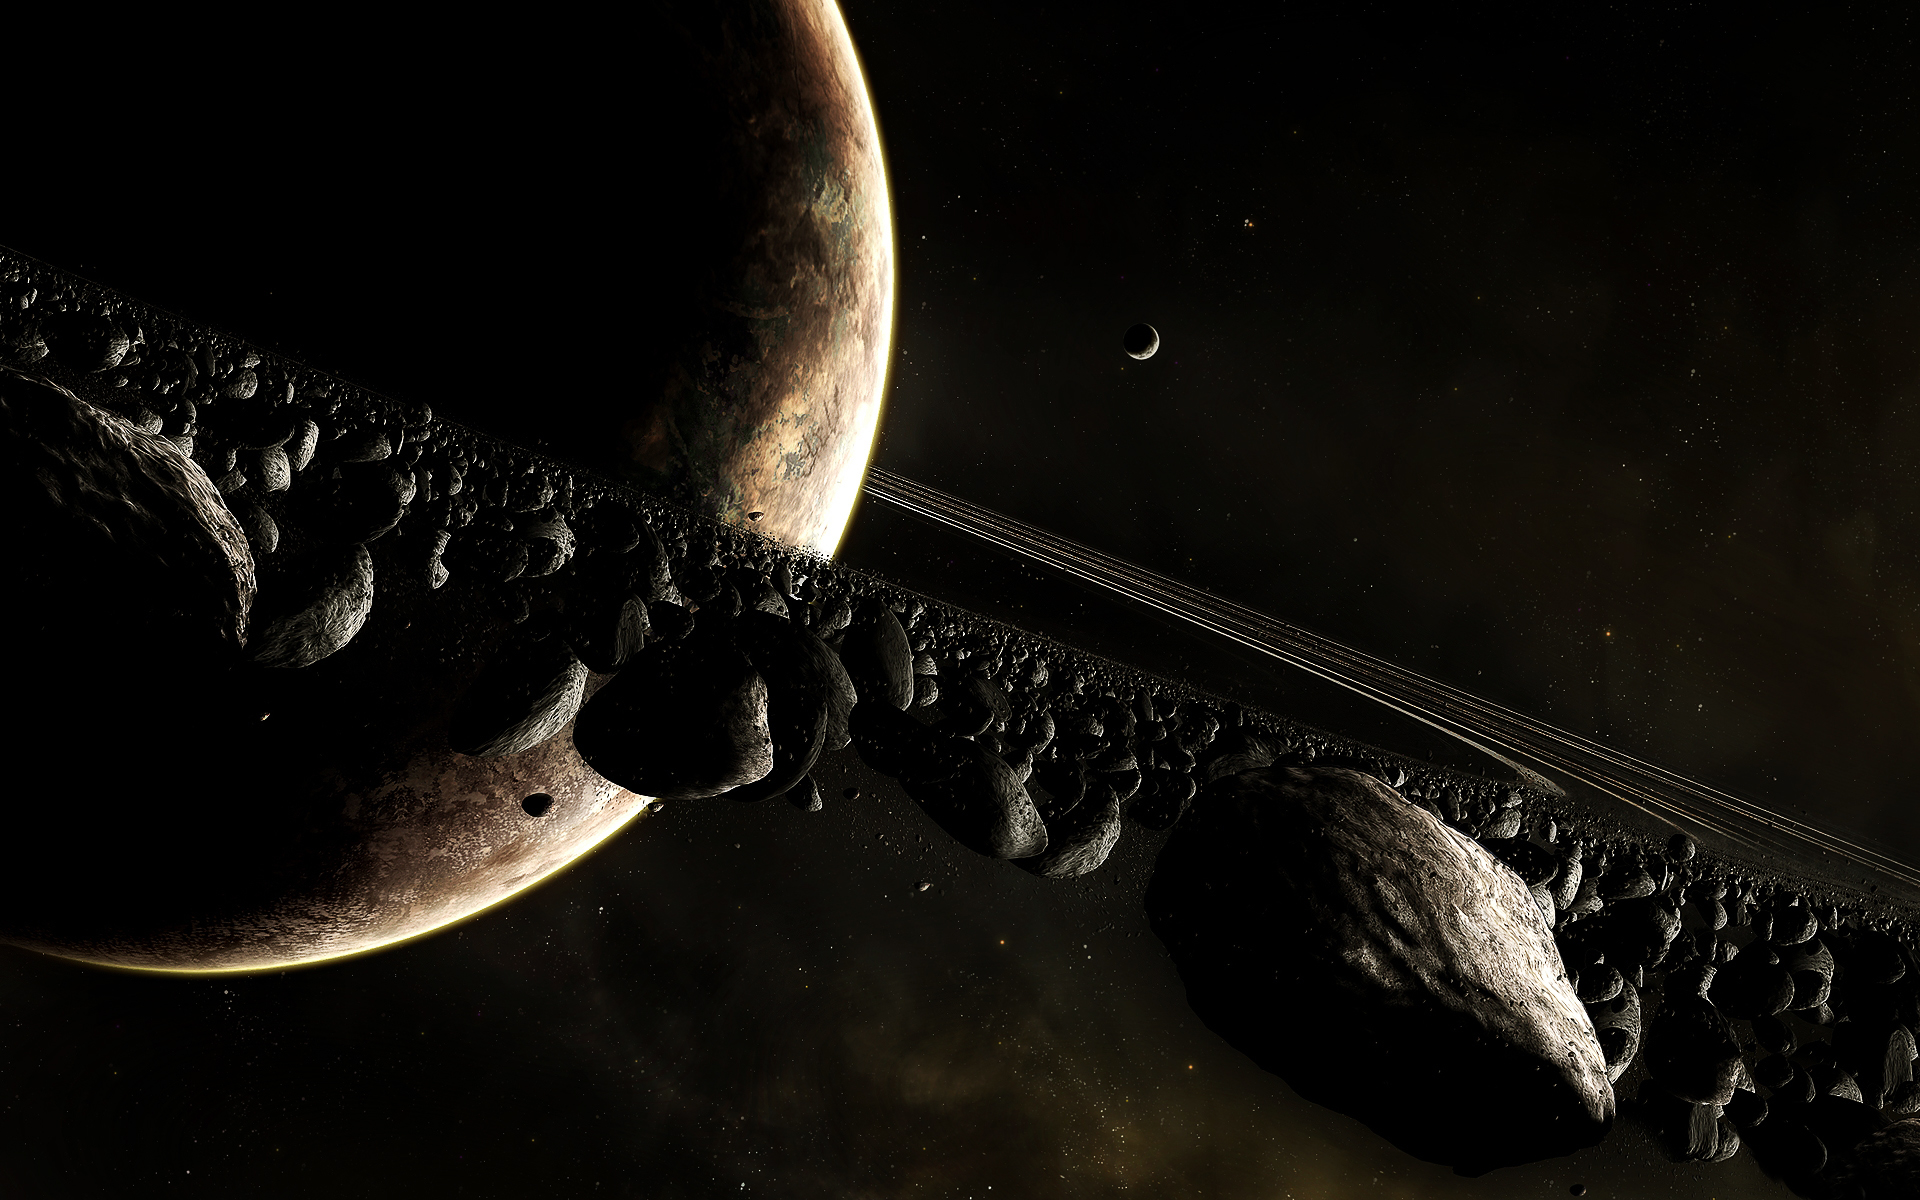 the surface of asteroid belts pictures - photo #34